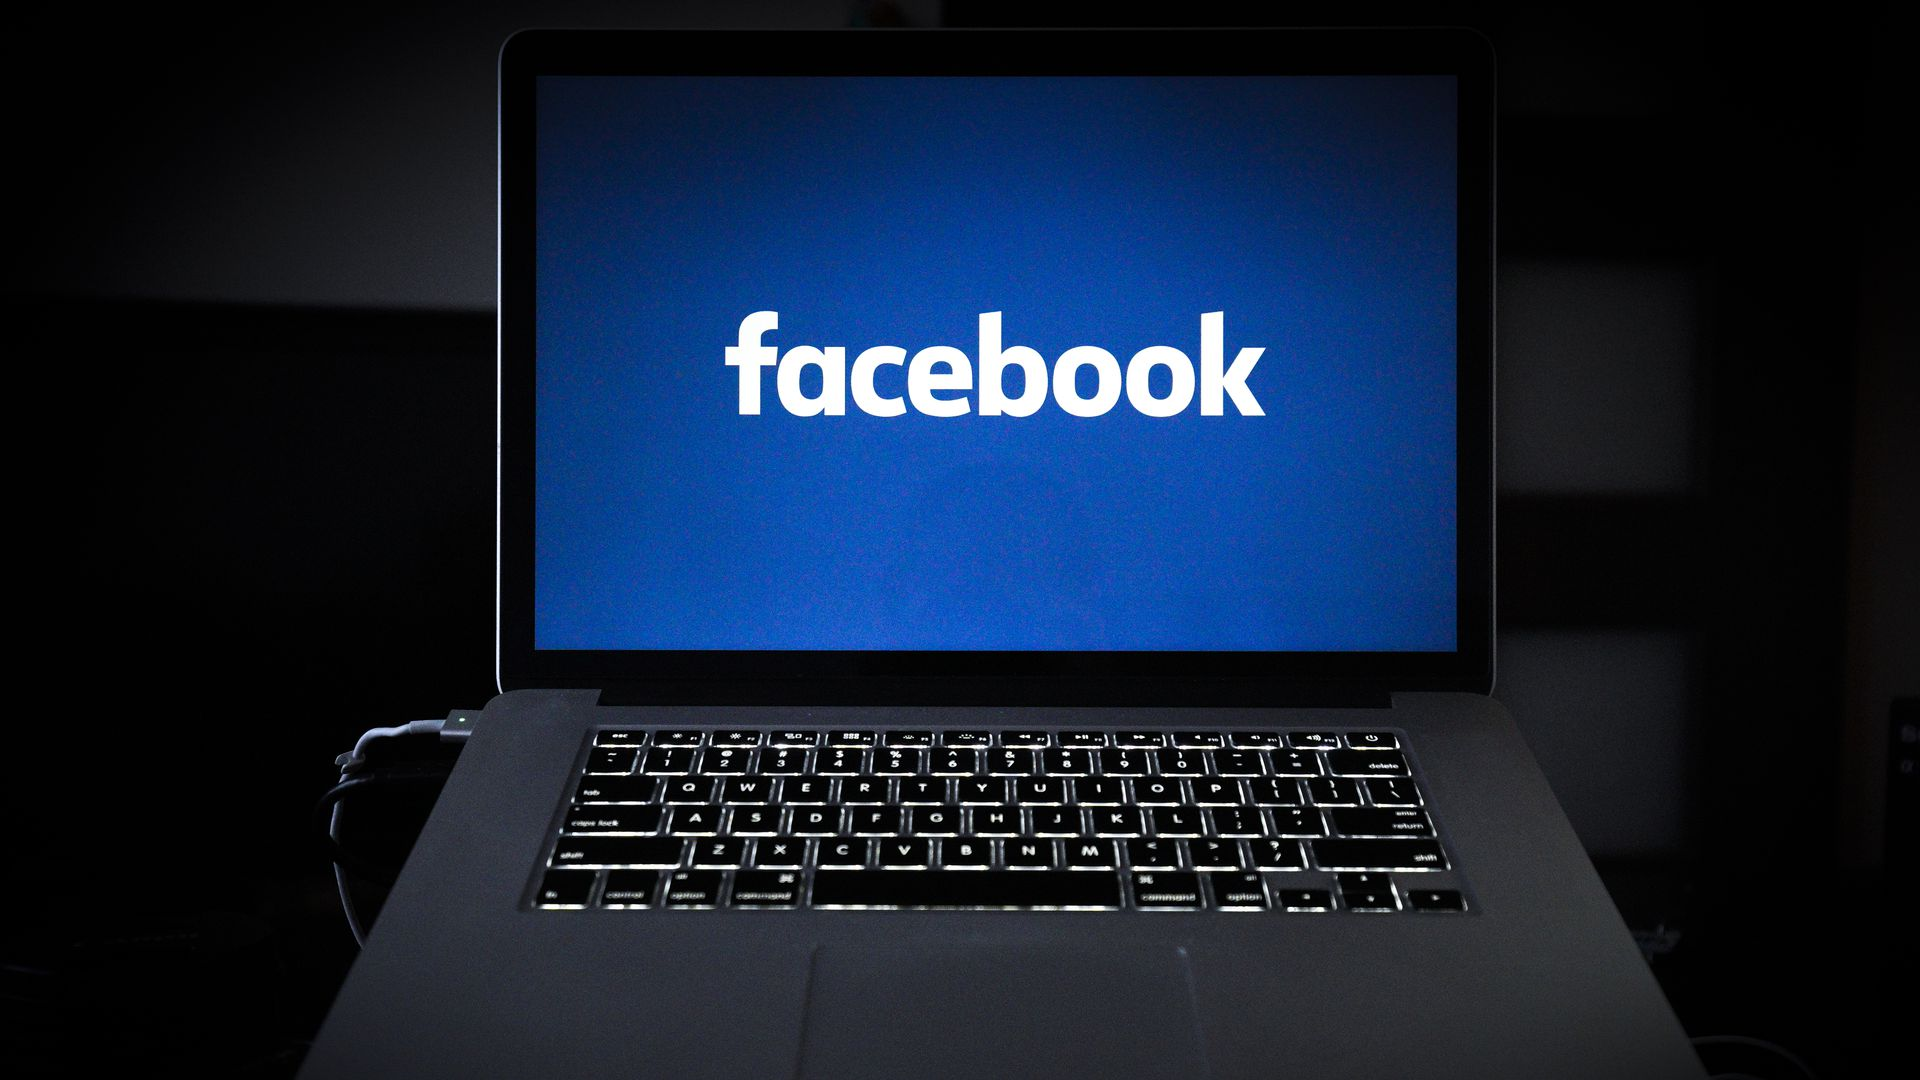 laptop with facebook logo on it